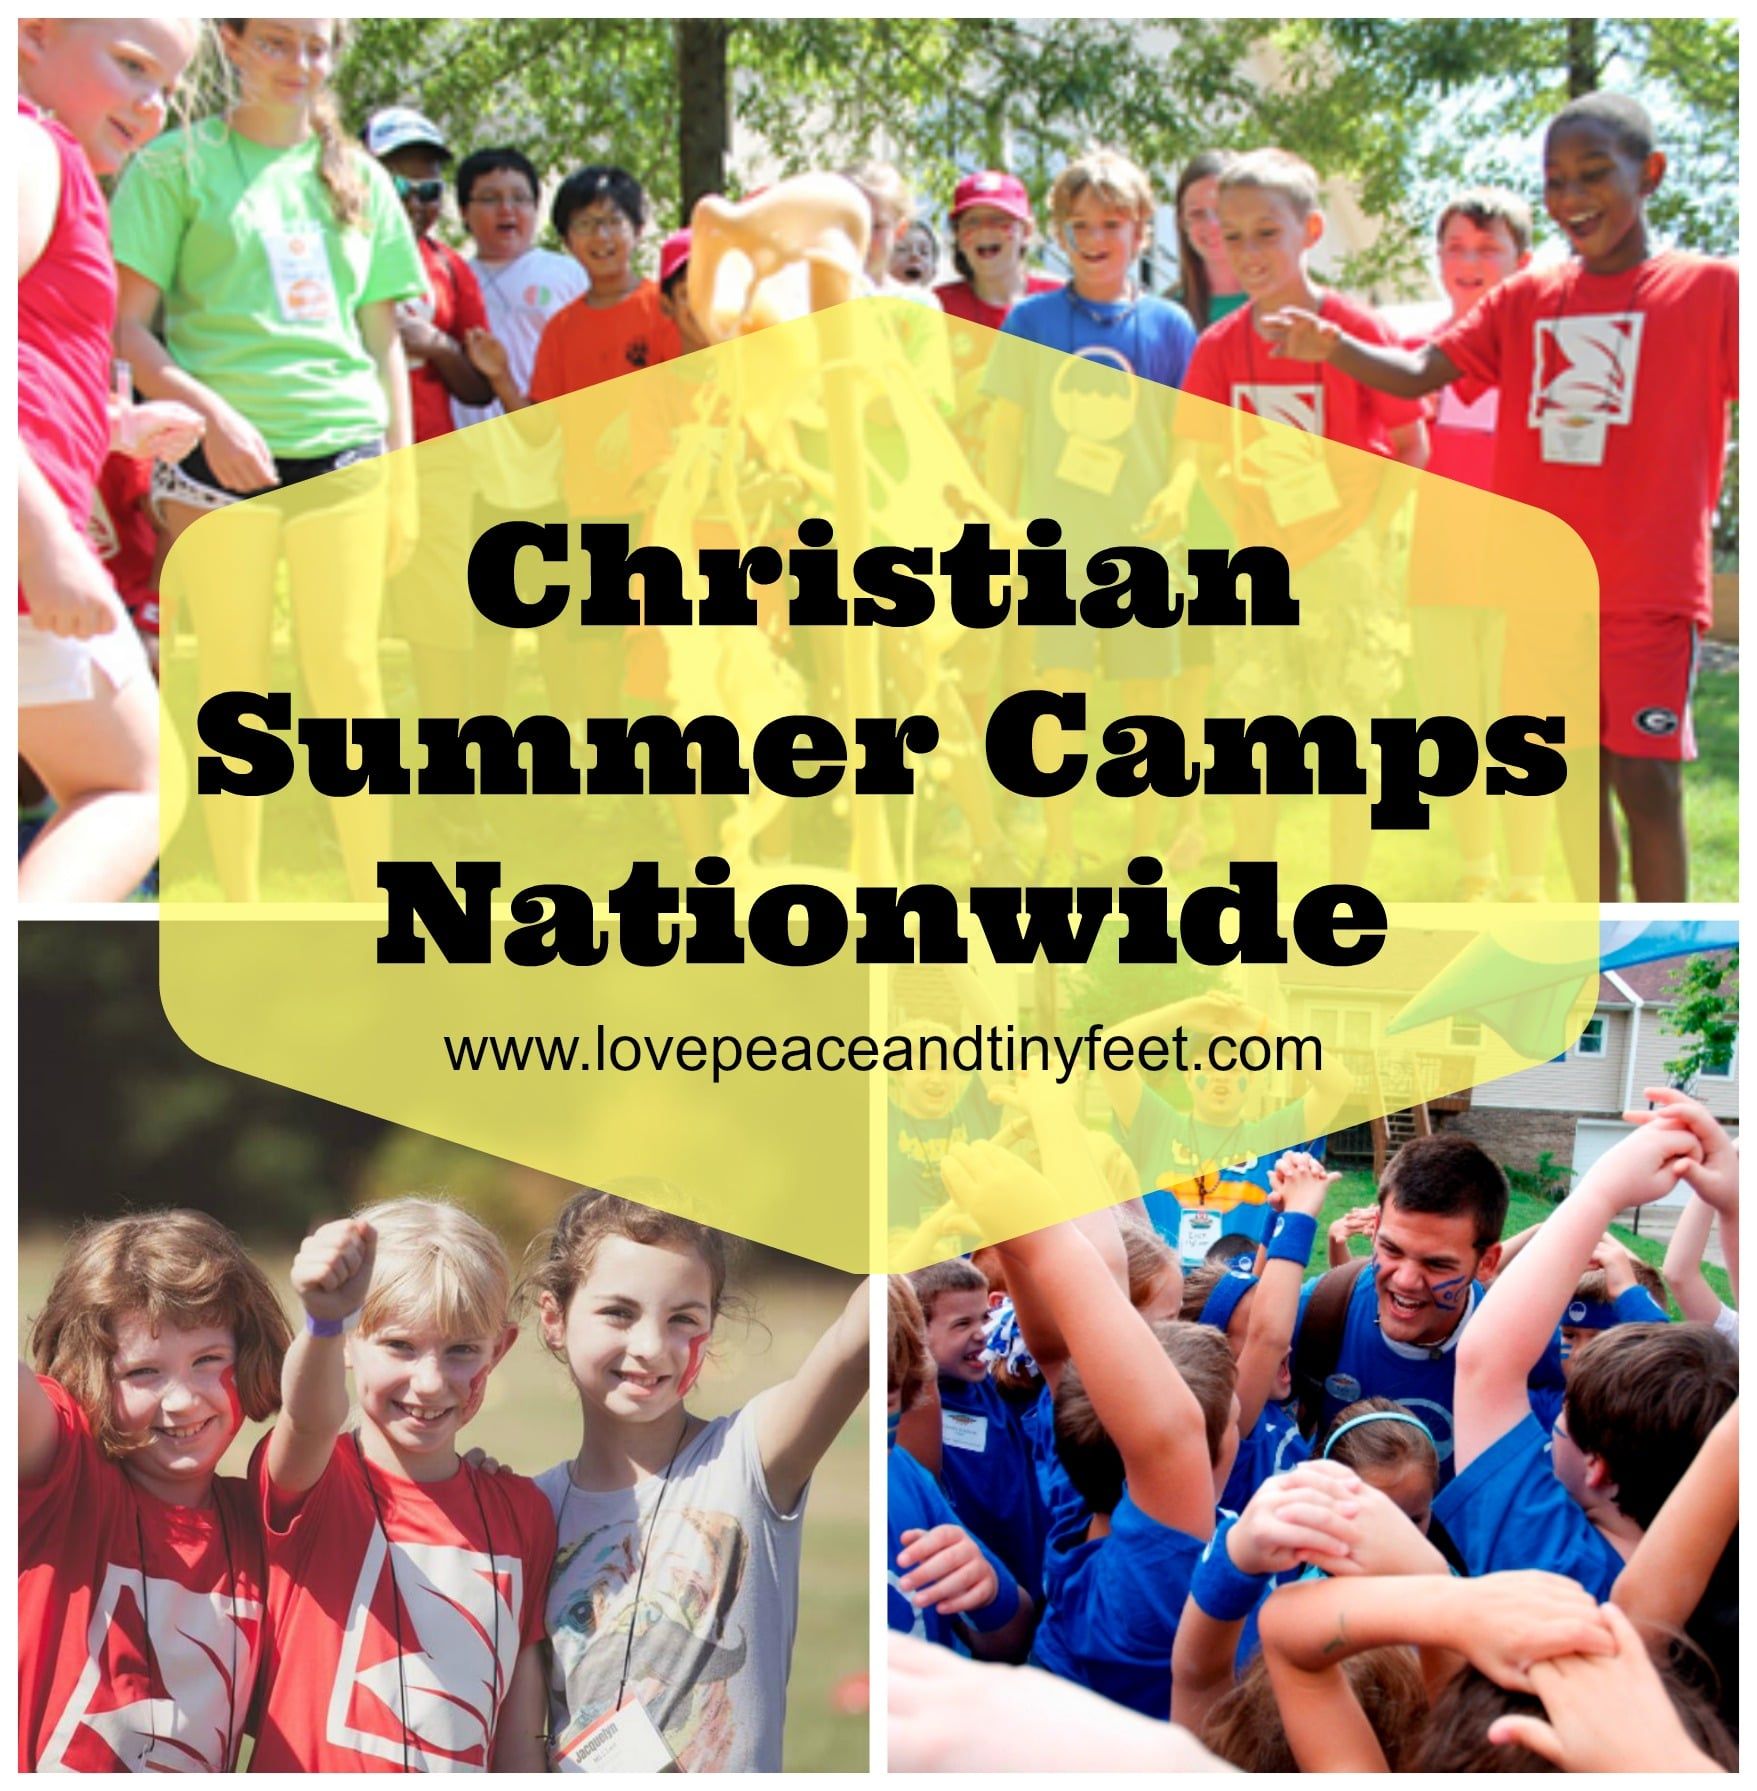 Christian Summer Camps